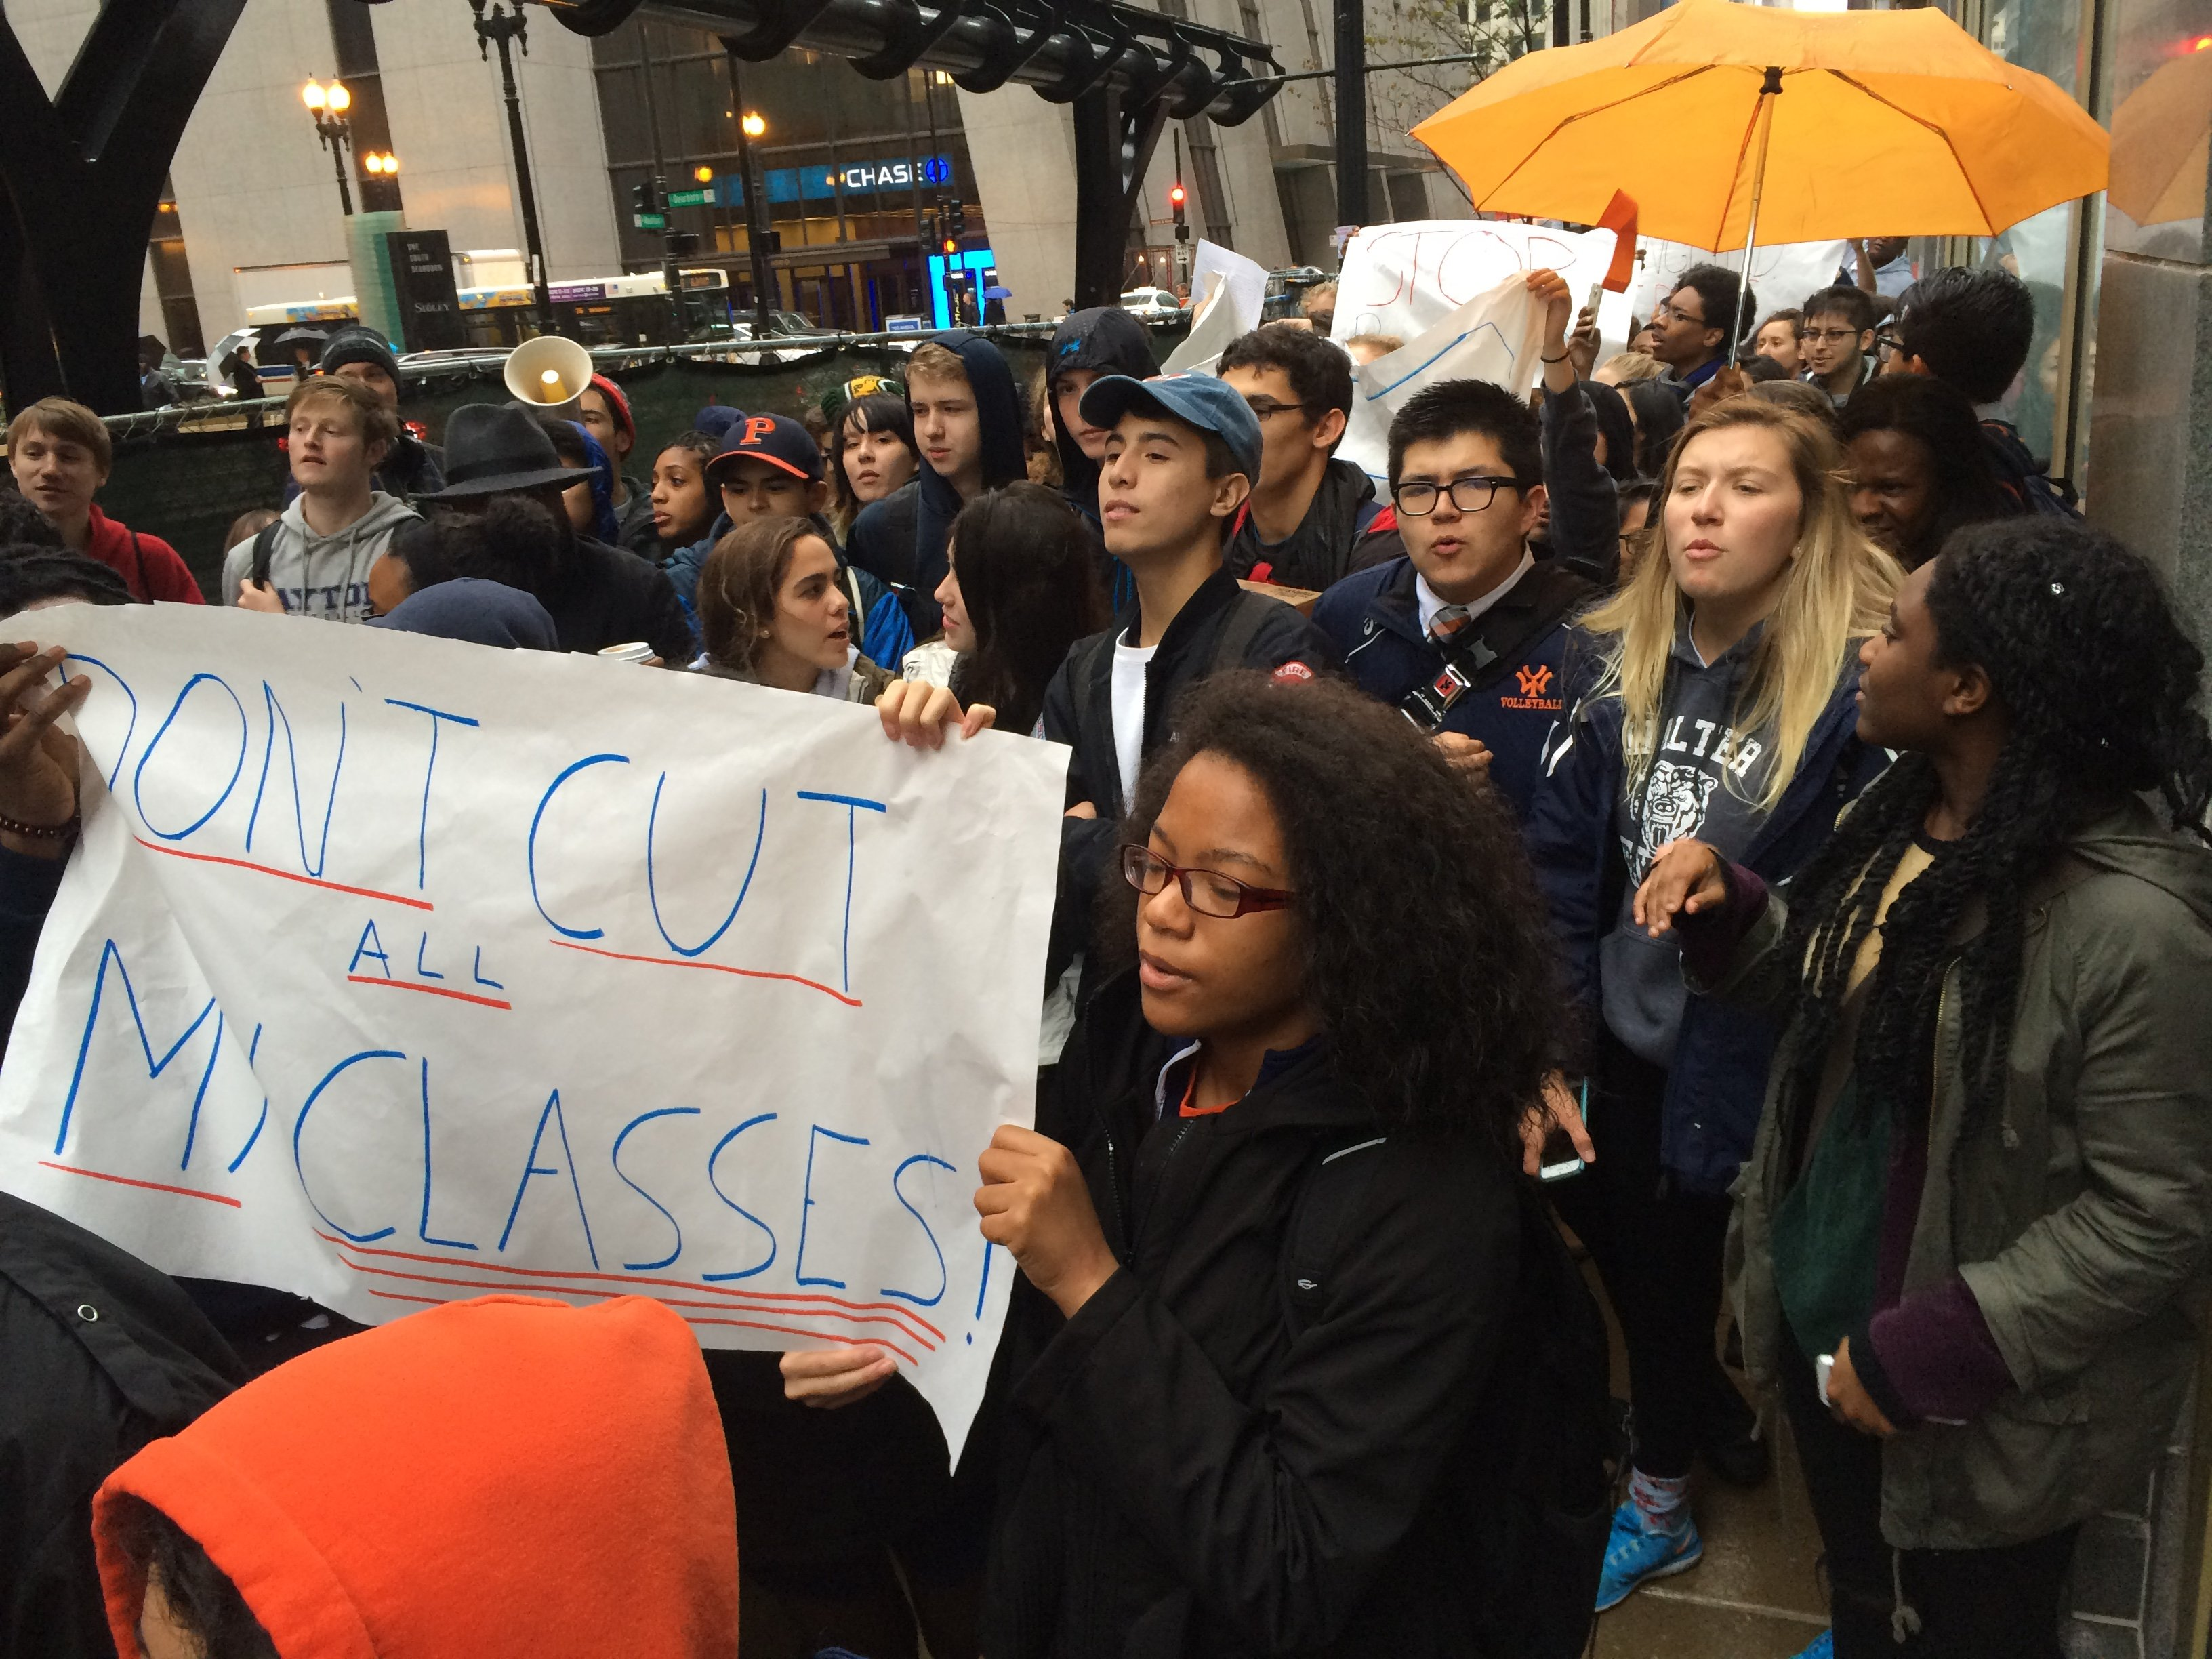 High school students protest at the CPS board meeting.